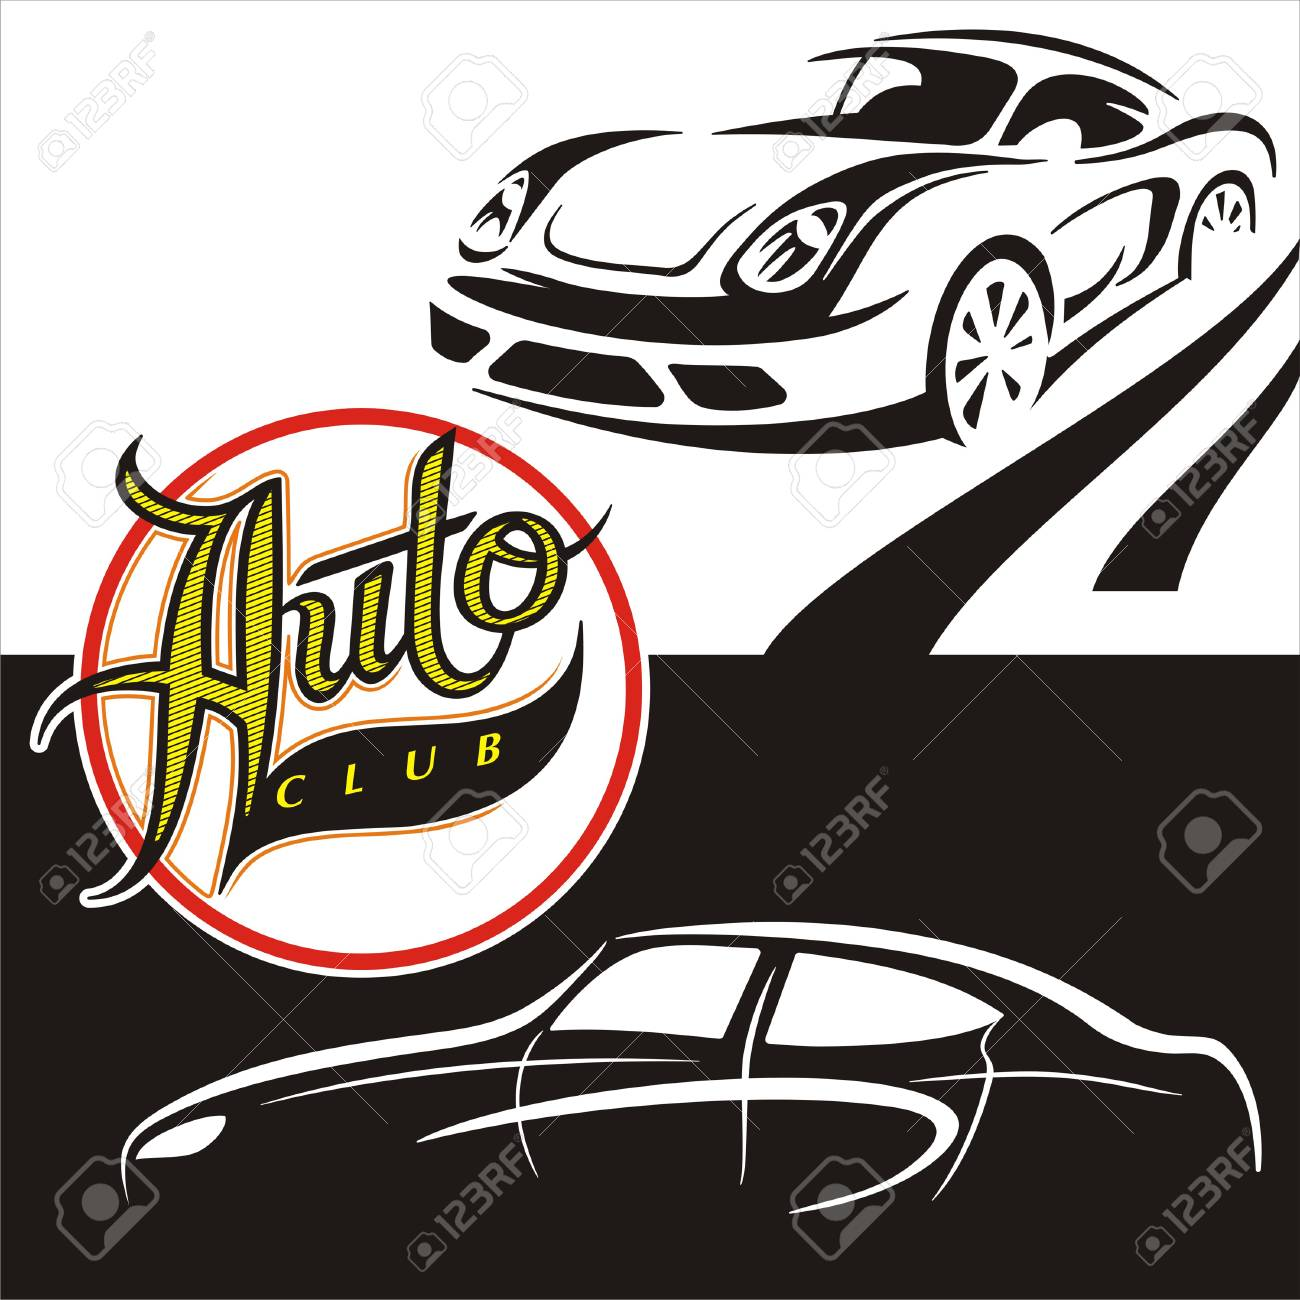 Illustrations Black And White Cars With The Sign Auto Club Stock Vector